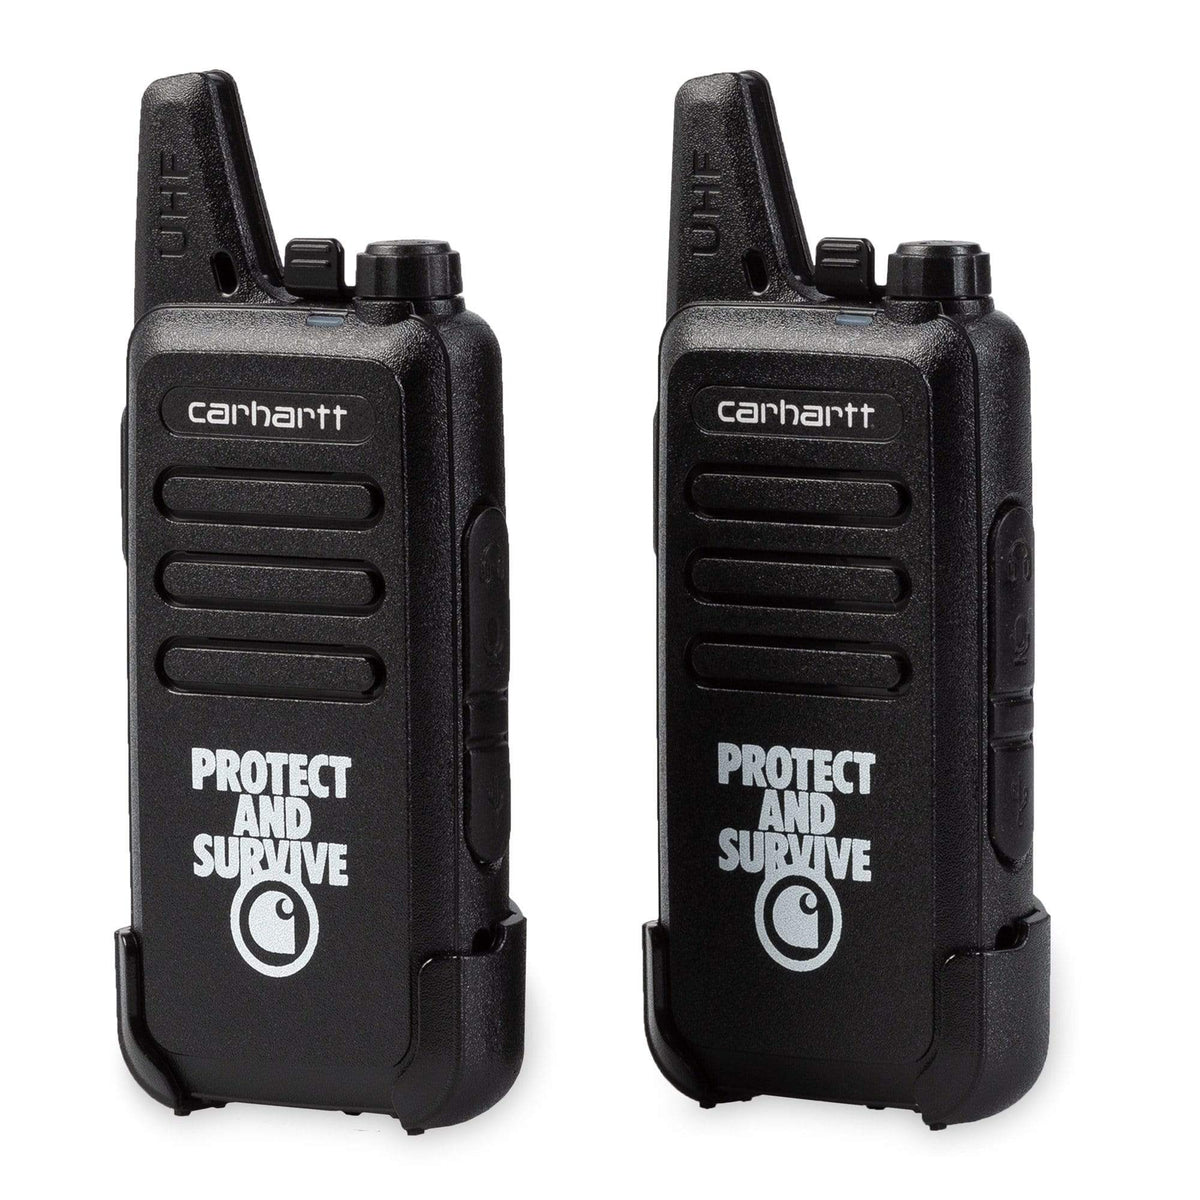 Protect Survive Walkie Talkie